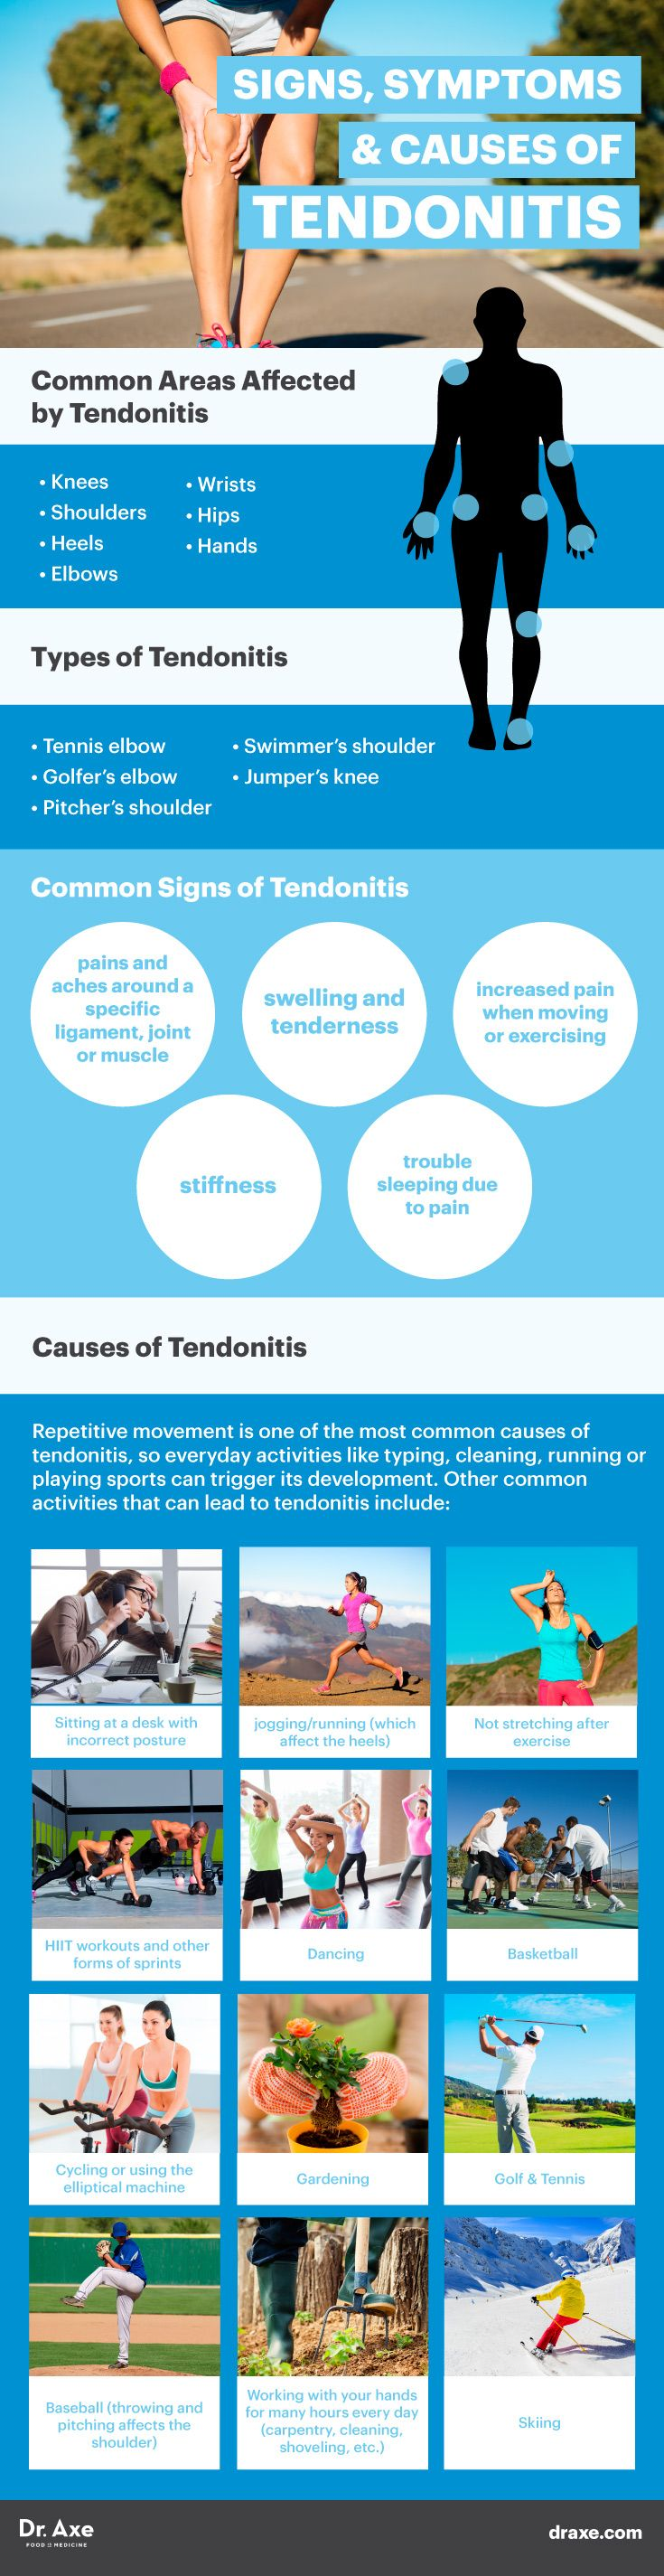 If you or someone you know suffers from Tendonitis - you know it can really be a painful thing. And although there are different ways to treat - these 6 Natural Treatments from Dr. Axe are great to keep in mind.